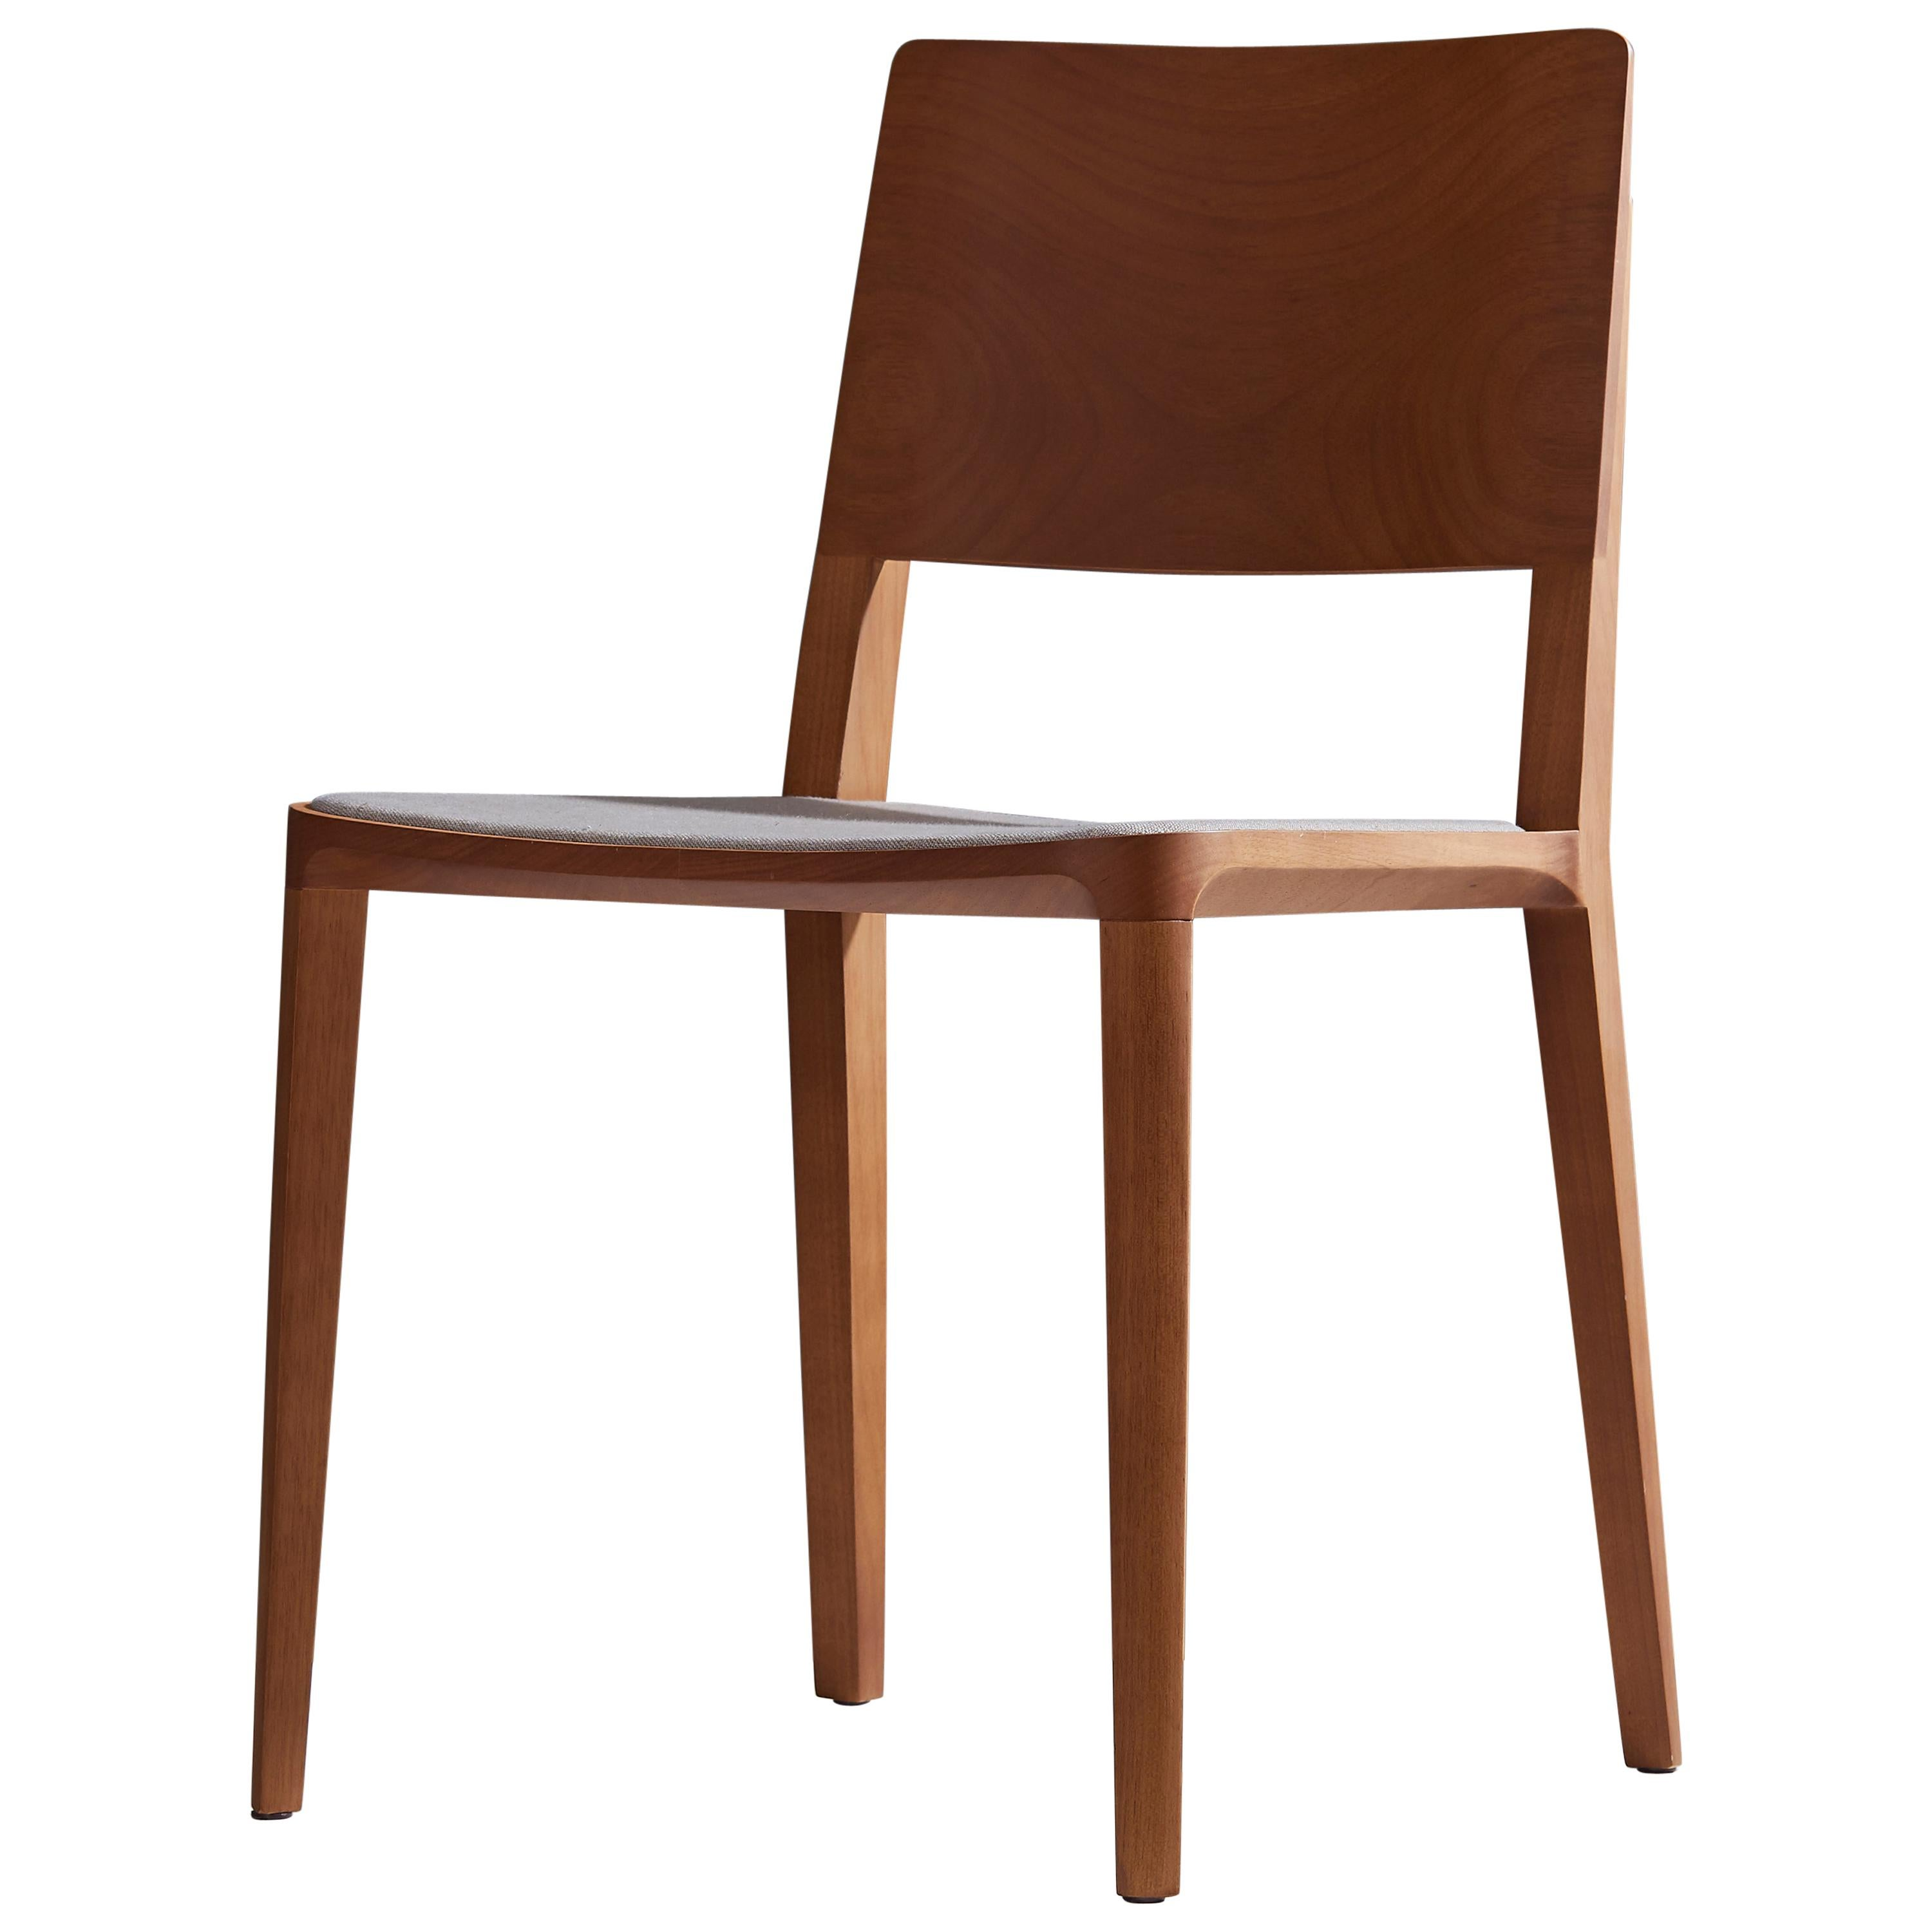 Minimalist Modern Chair in Natural Solid Wood Upholstered Textile Seating